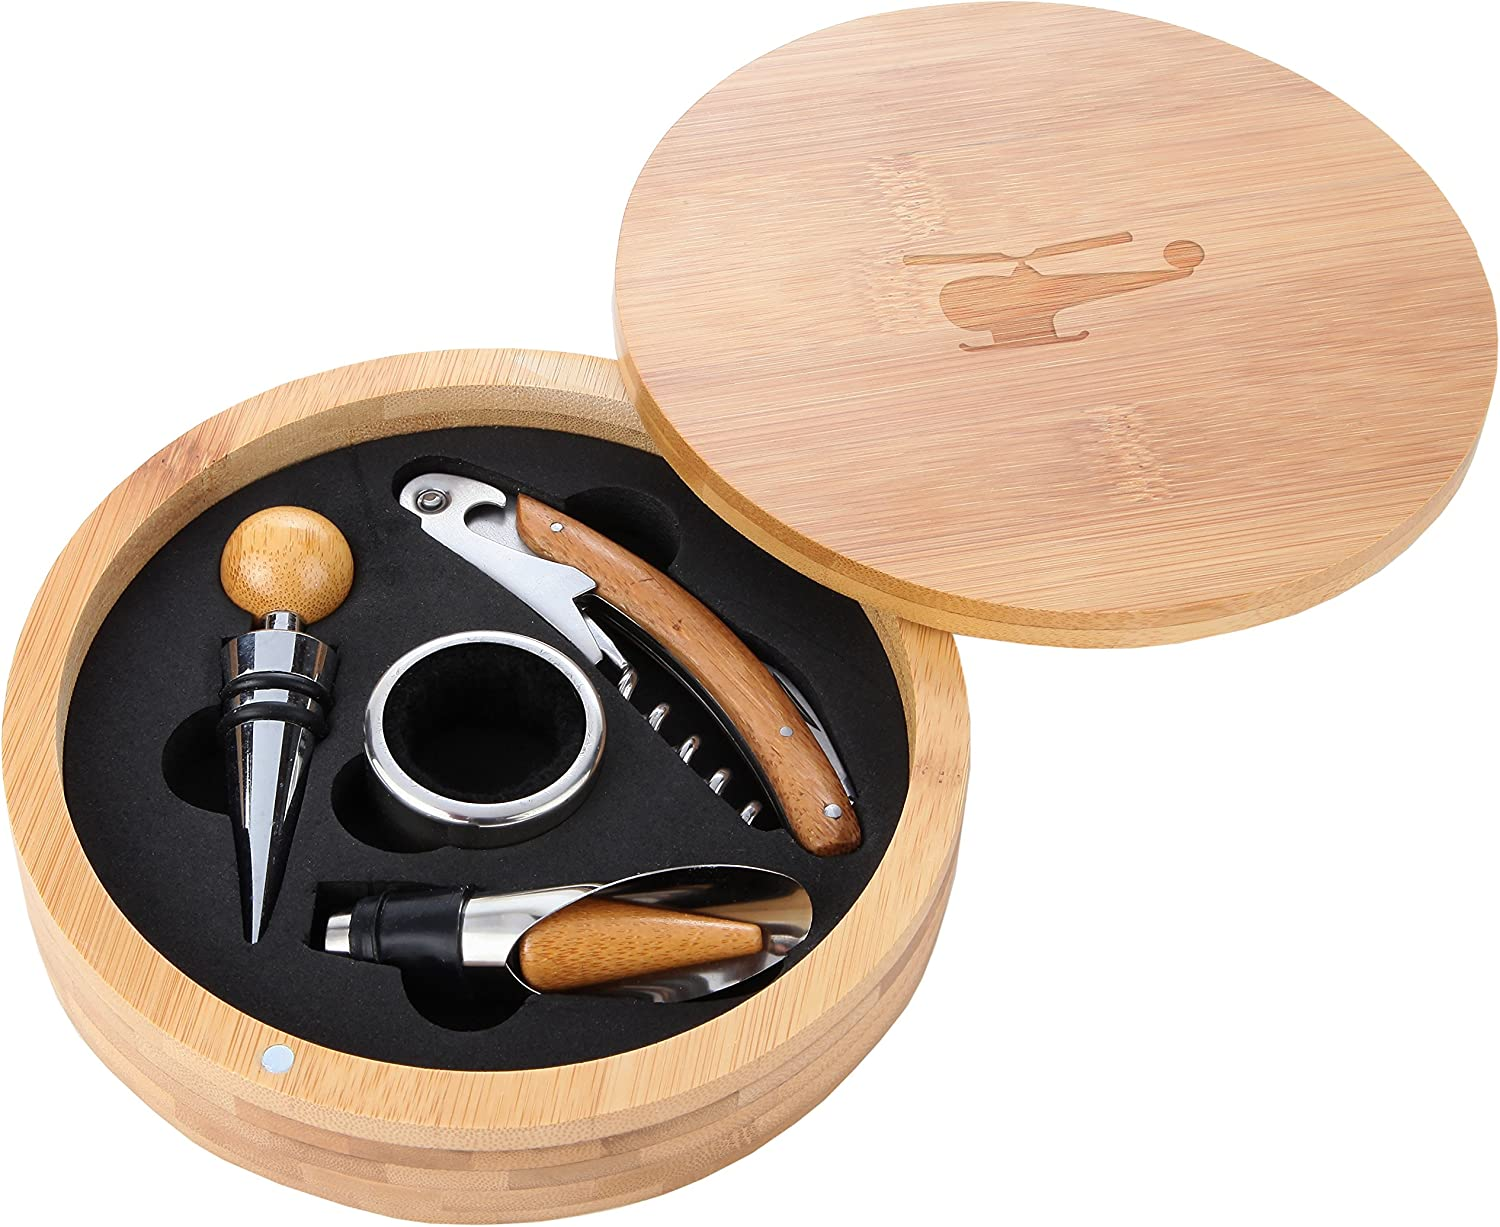 Helicopter Wooden OFFicial site Accessories Company Wine Tool Set - Regular store Portable W